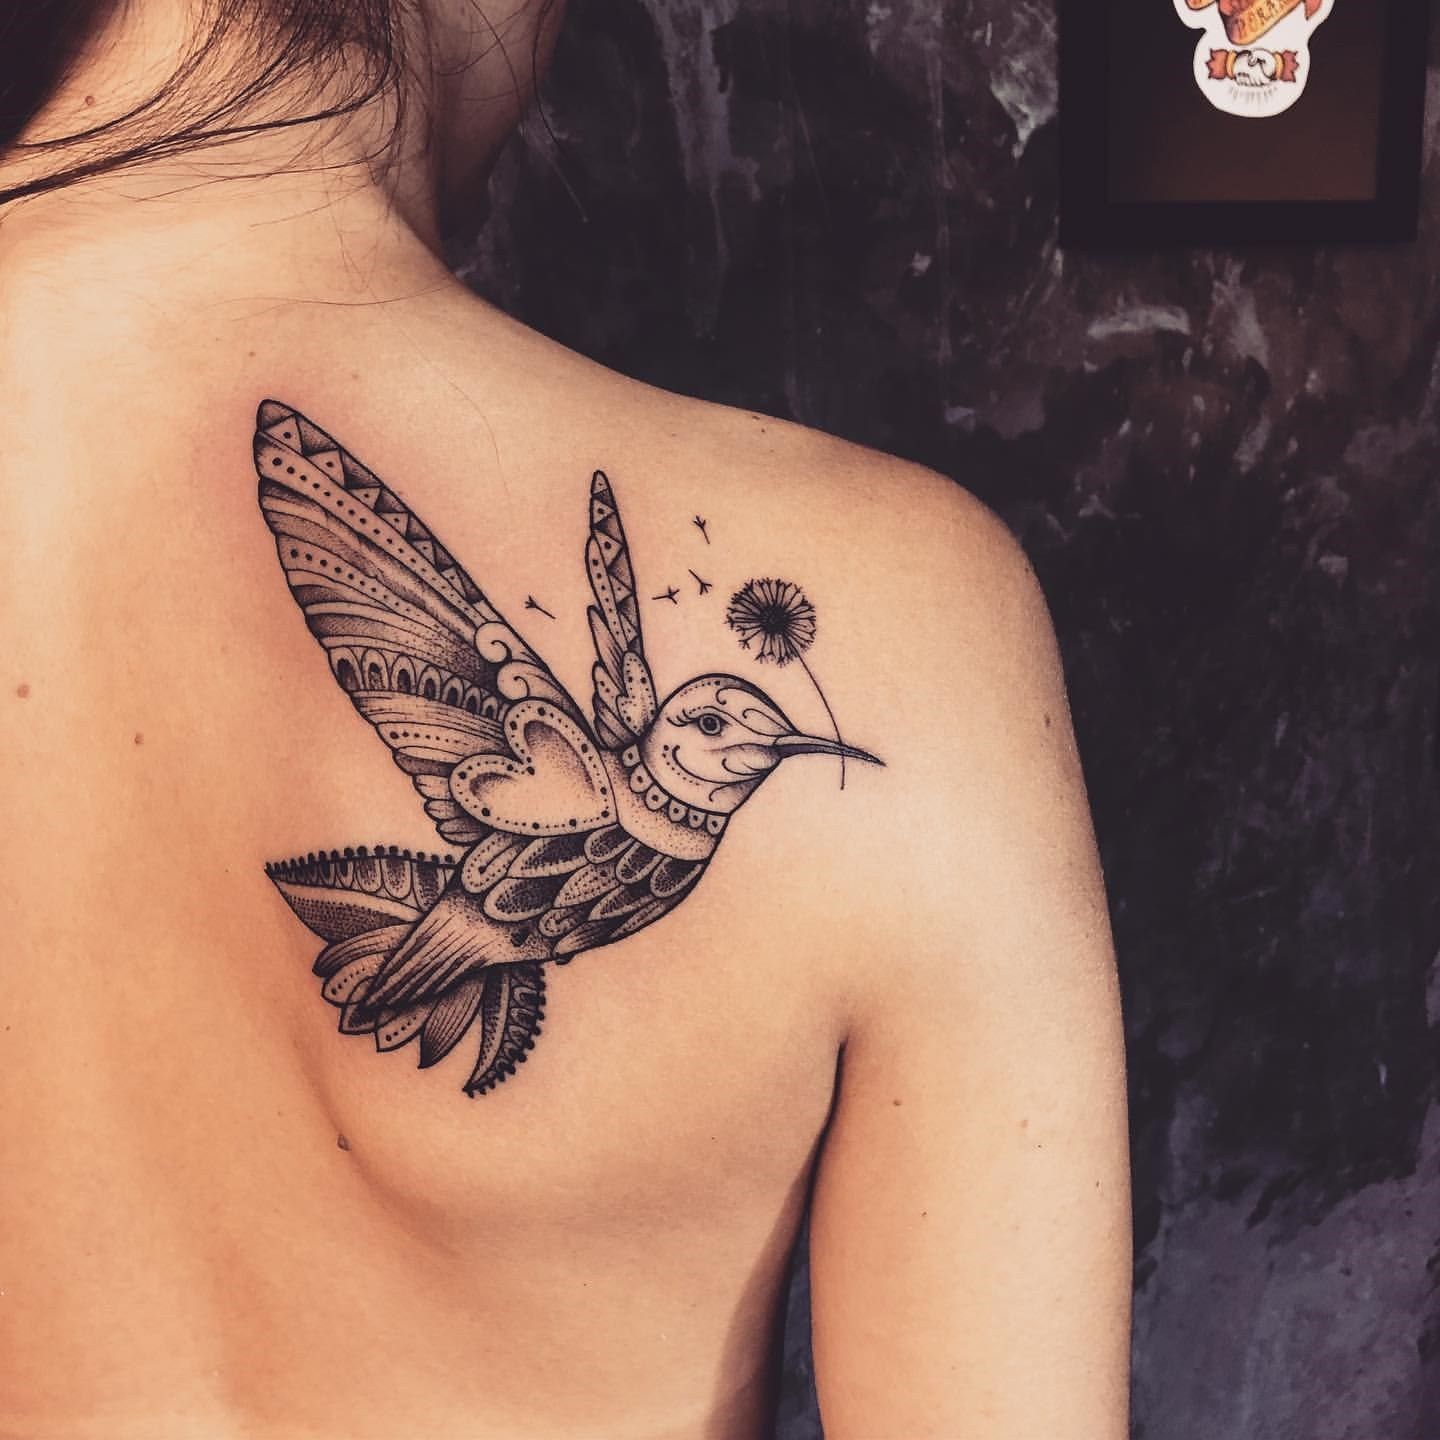 100 Beautiful And Powerful Tattoo Ideas To Inspire You In 2020 Shoulder Tattoos For Women Shoulder Tattoos Tattoos For Women